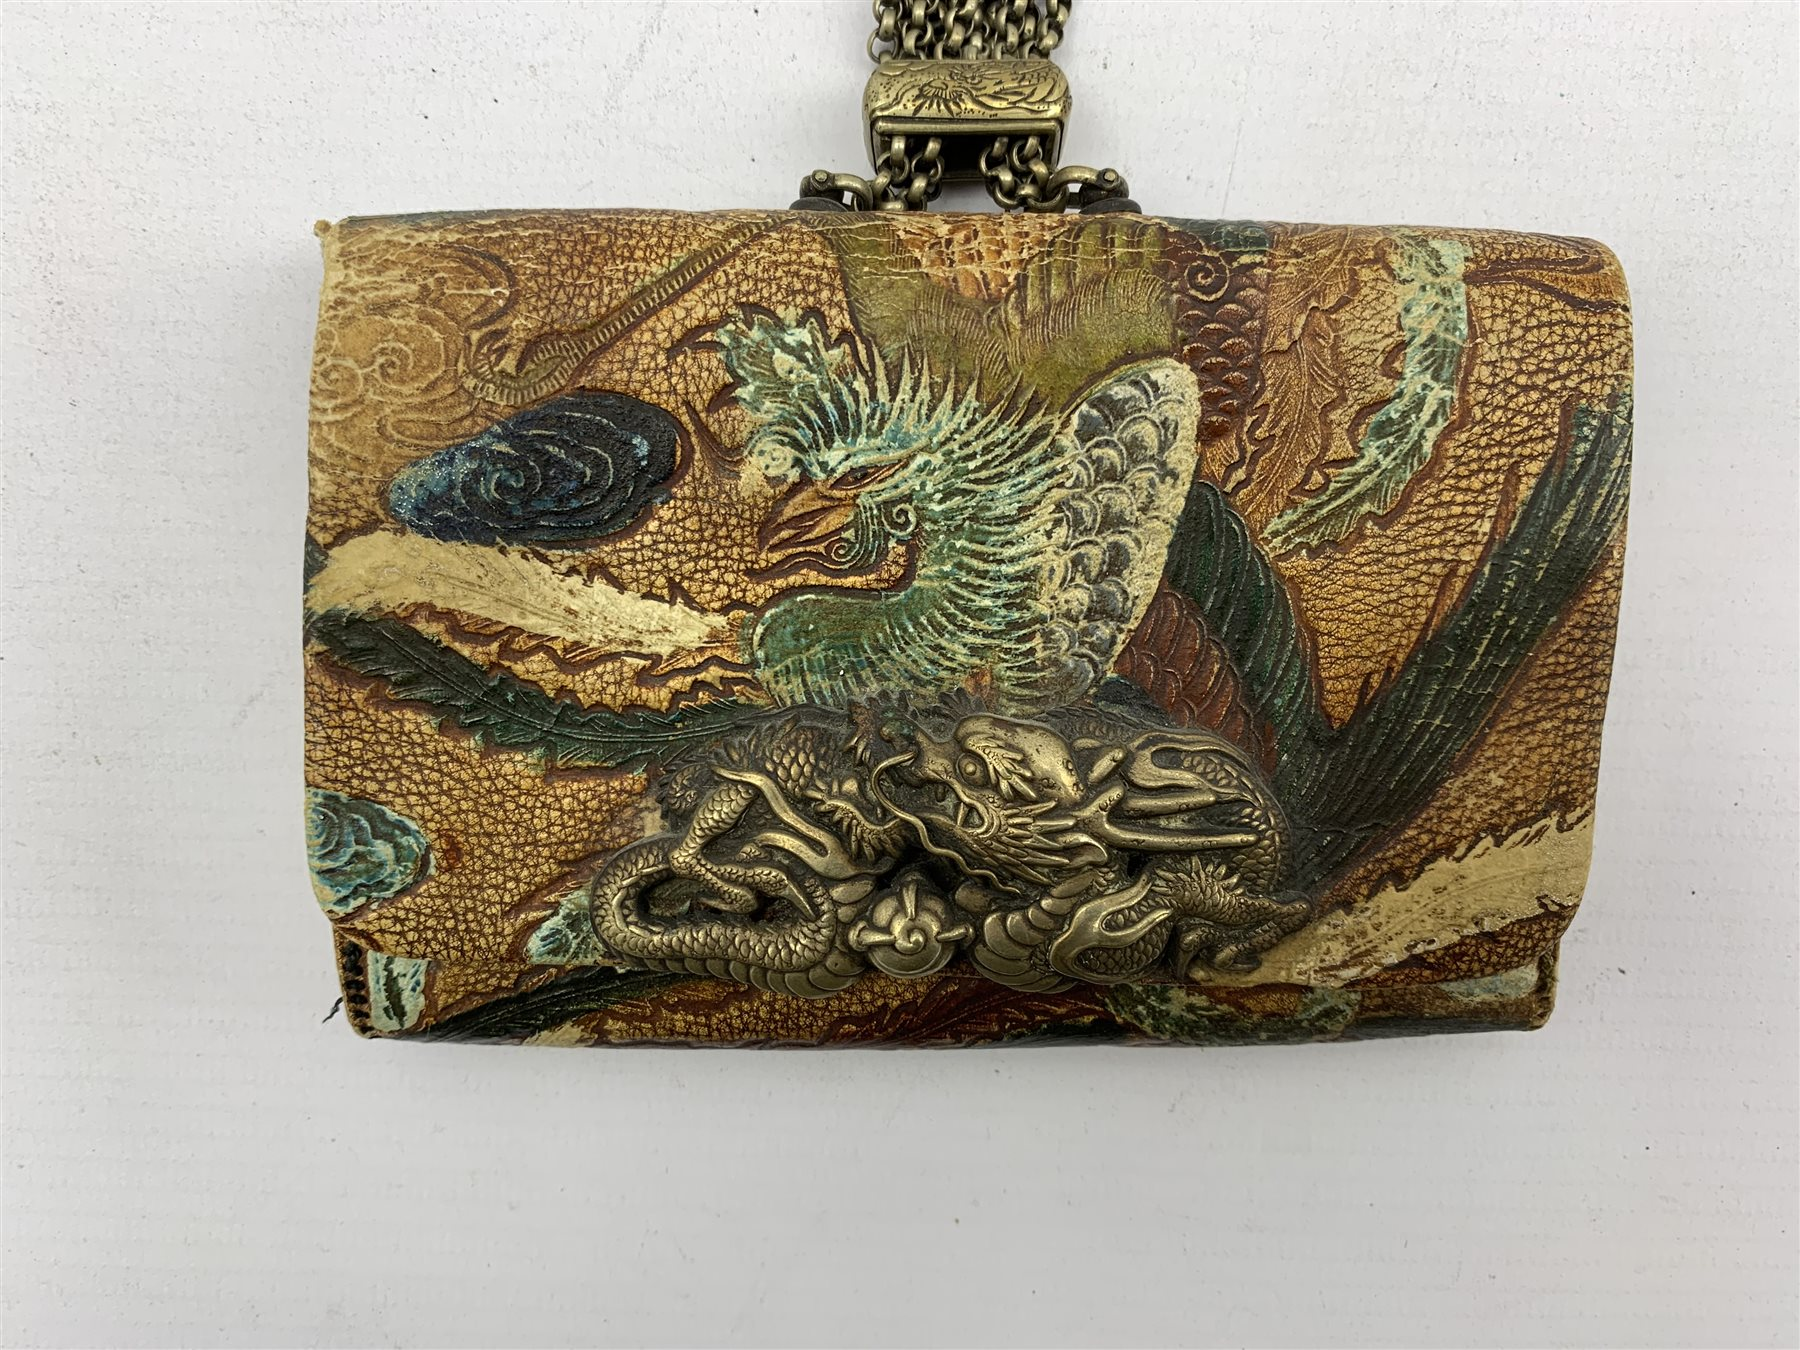 Japanese Meiji tooled leather tobacco pouch (tabako-ire) with metal mae-kanagu in the form of a Drag - Image 2 of 5